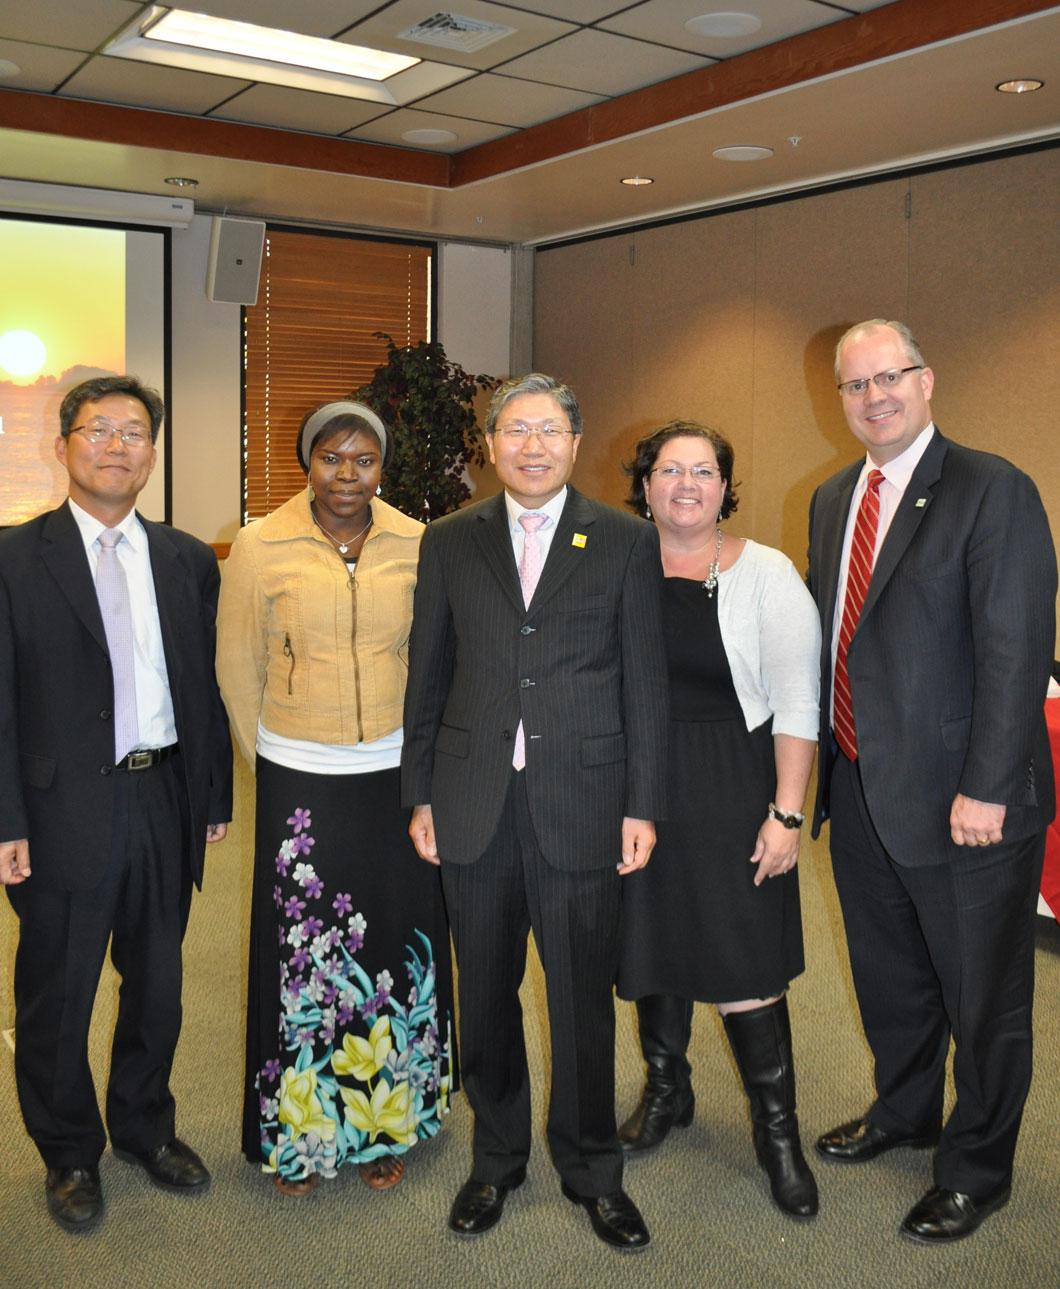 Consul General Han & Consular Agent David Lee with Marie Poudiougou, Amy Barnett & VP Cameron Martin from UVU